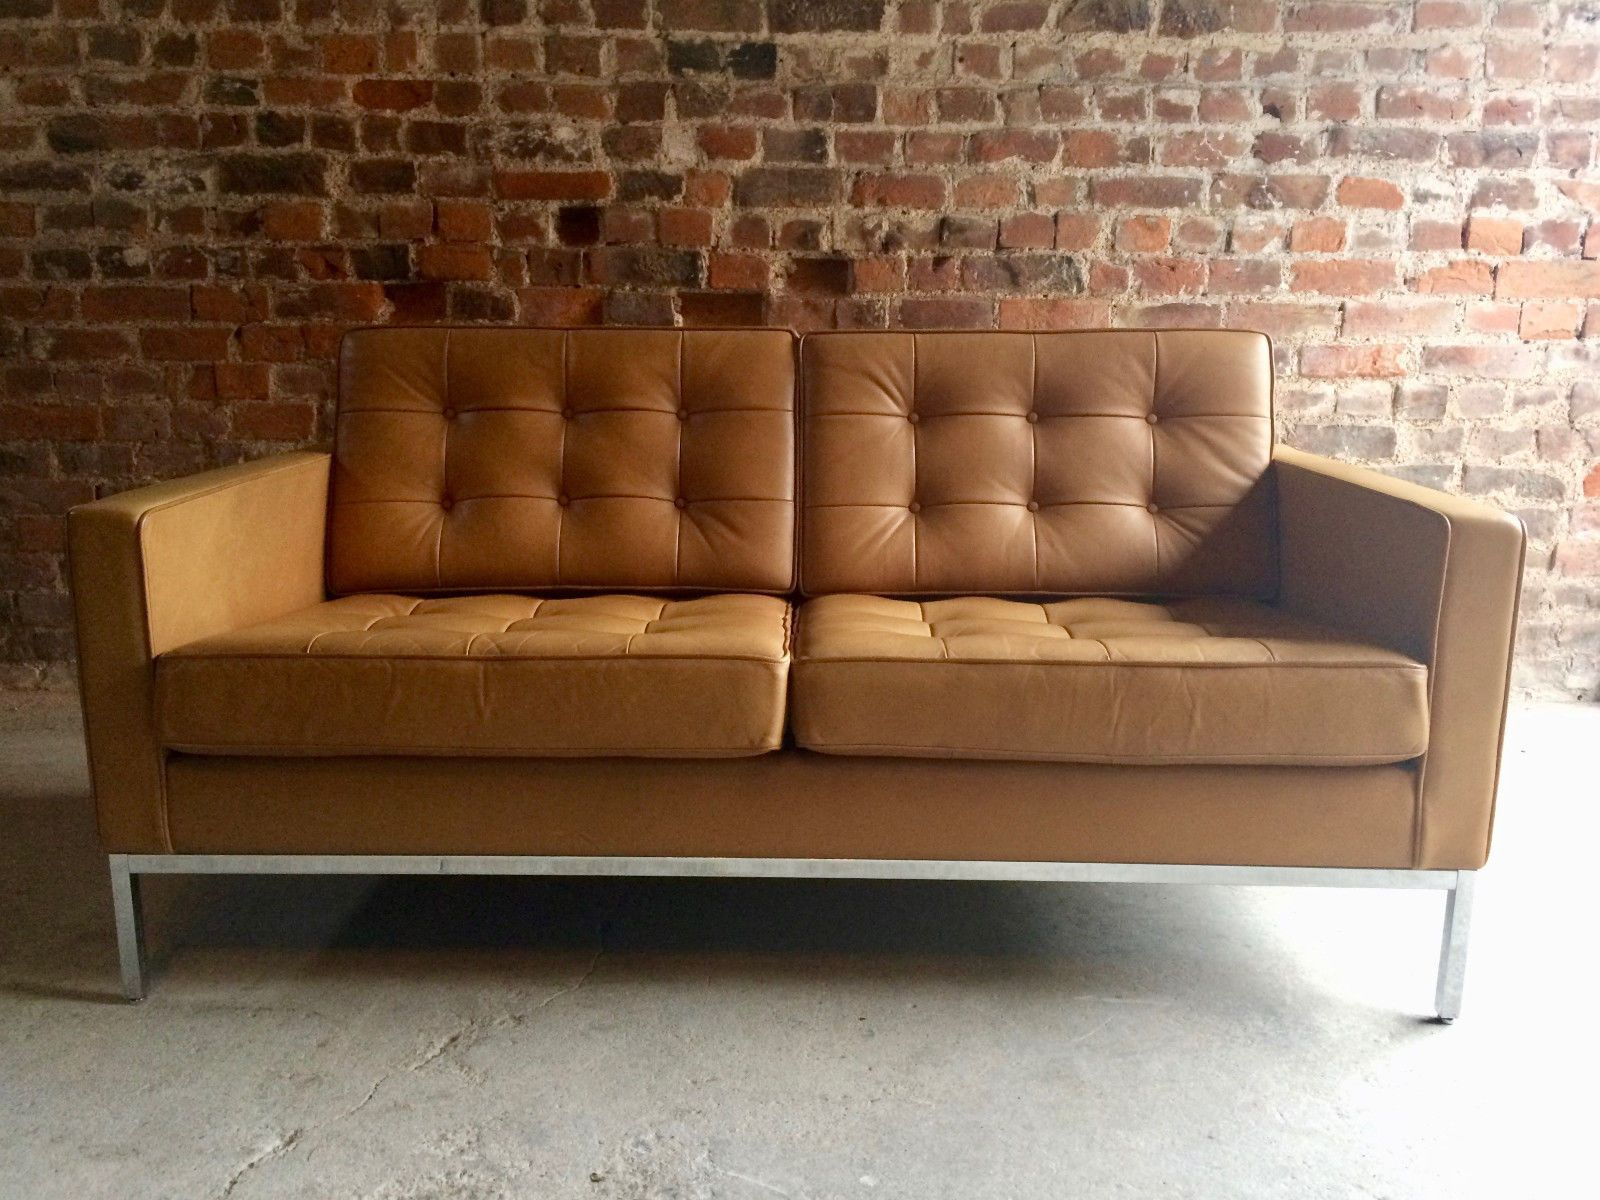 vintage knoll sofa clic design before after vintage florence knoll sofa thesofa. Black Bedroom Furniture Sets. Home Design Ideas